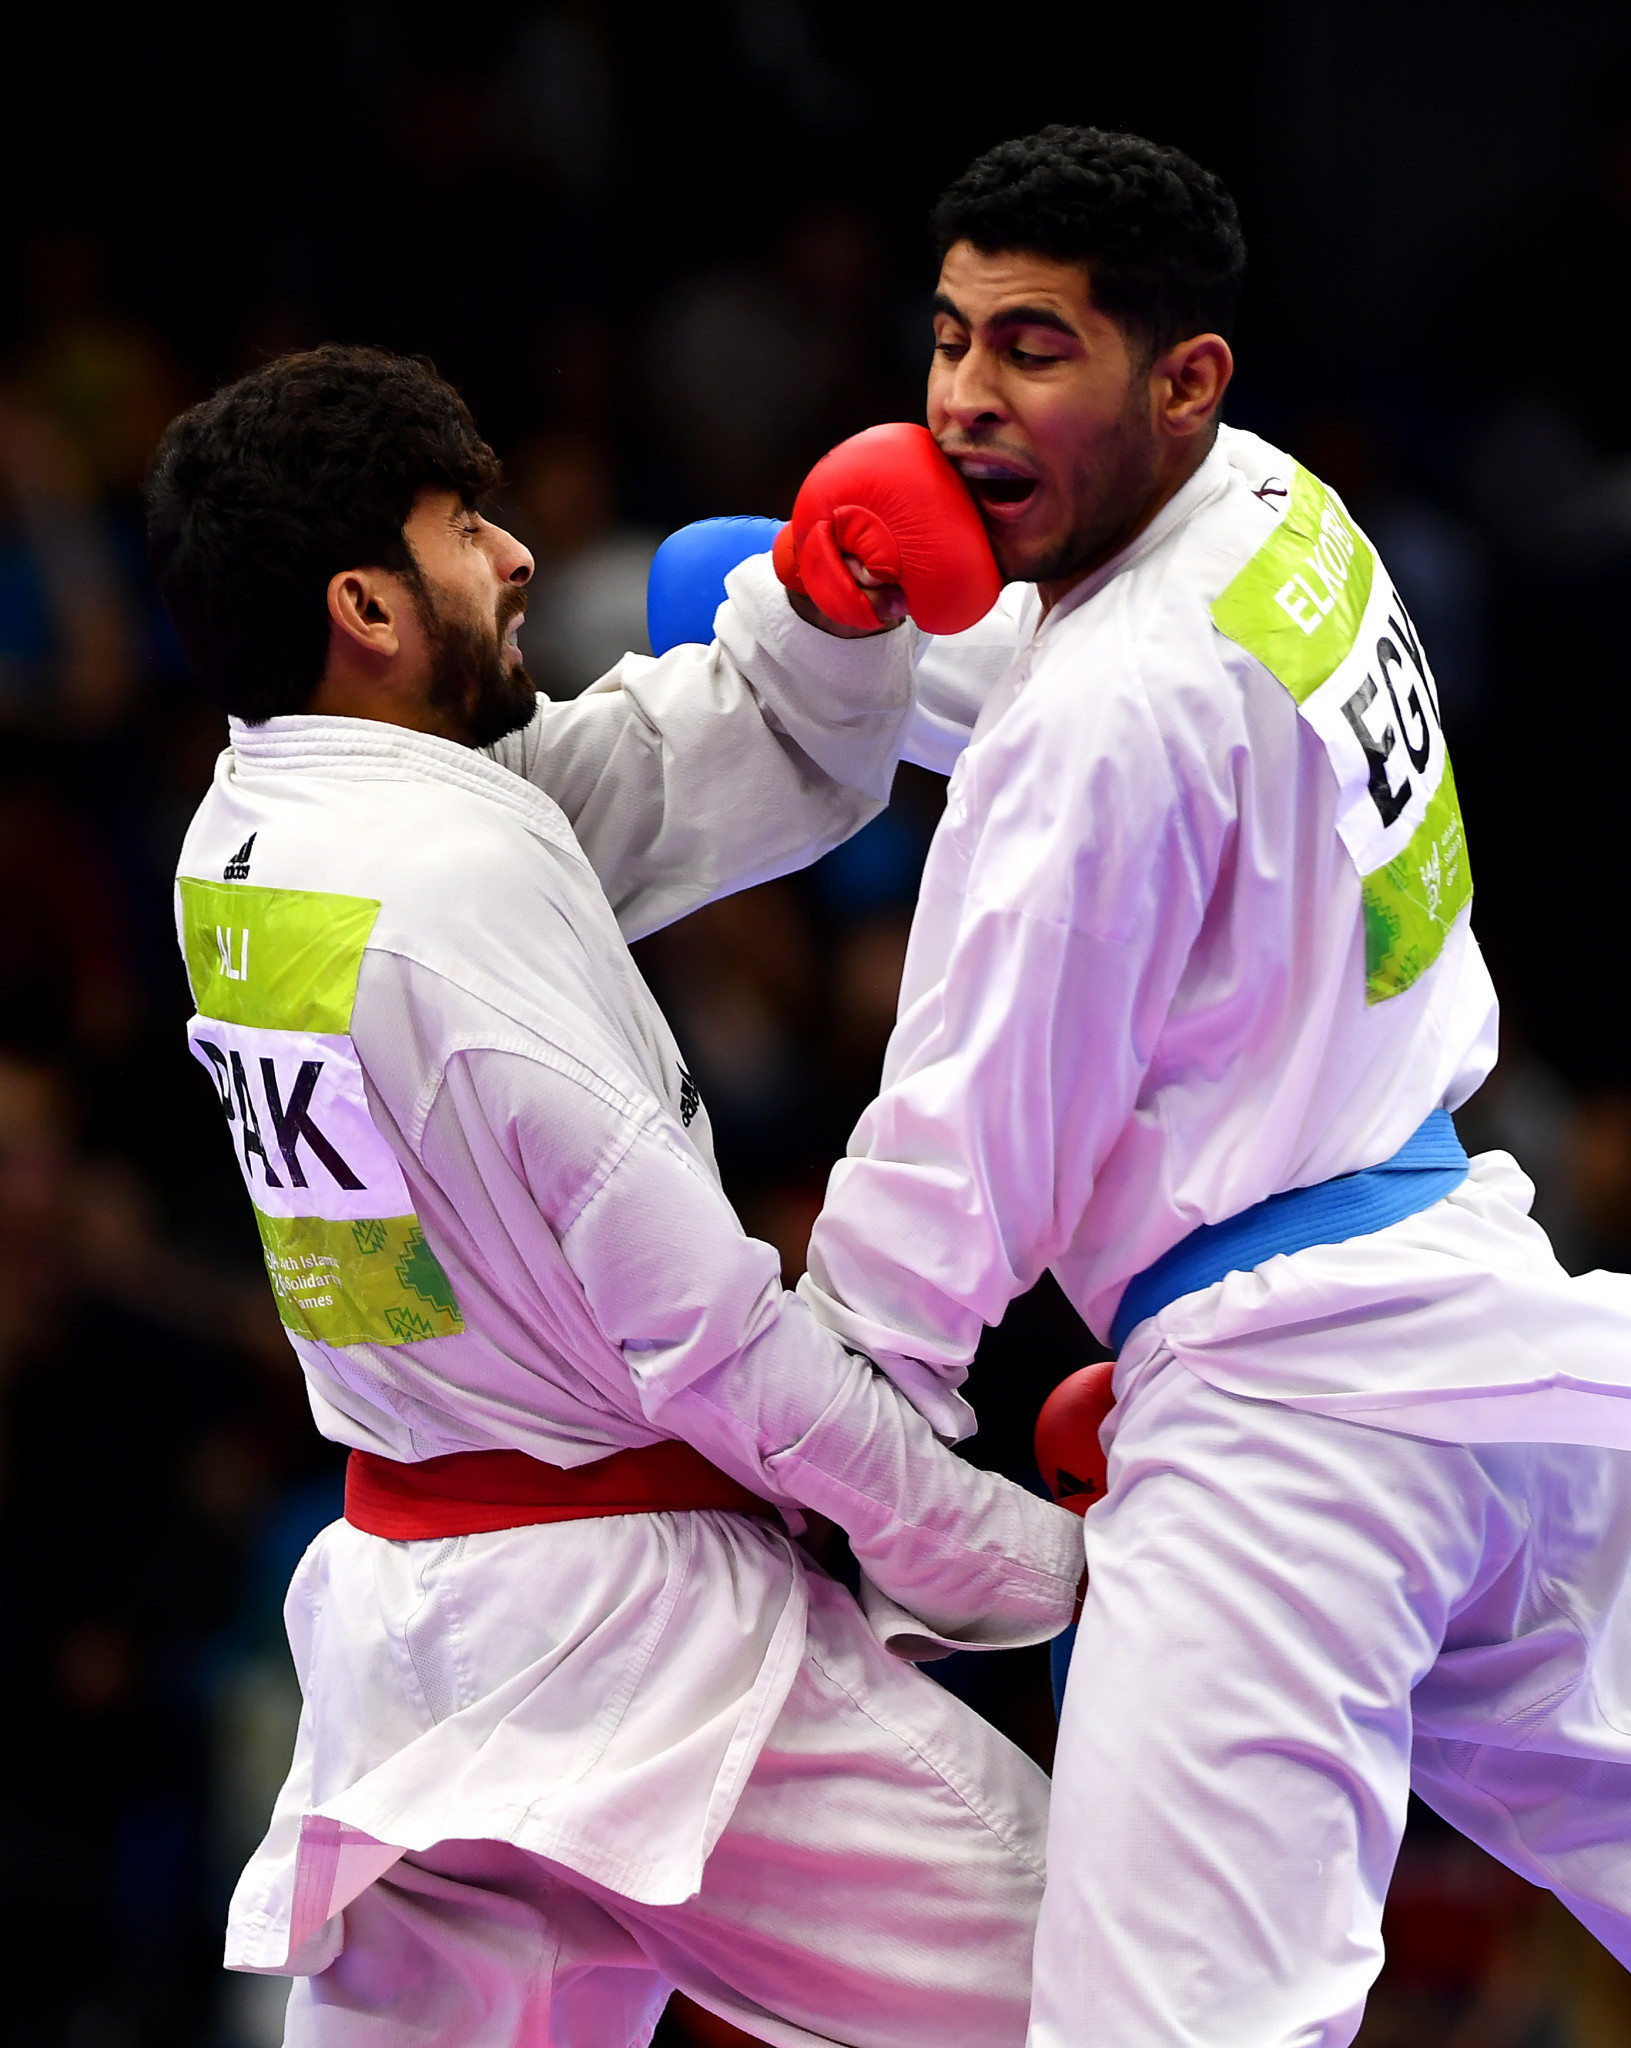 Karate is preparing for its Olympic debut in Japan, at Tokyo 2020 ©Getty Images